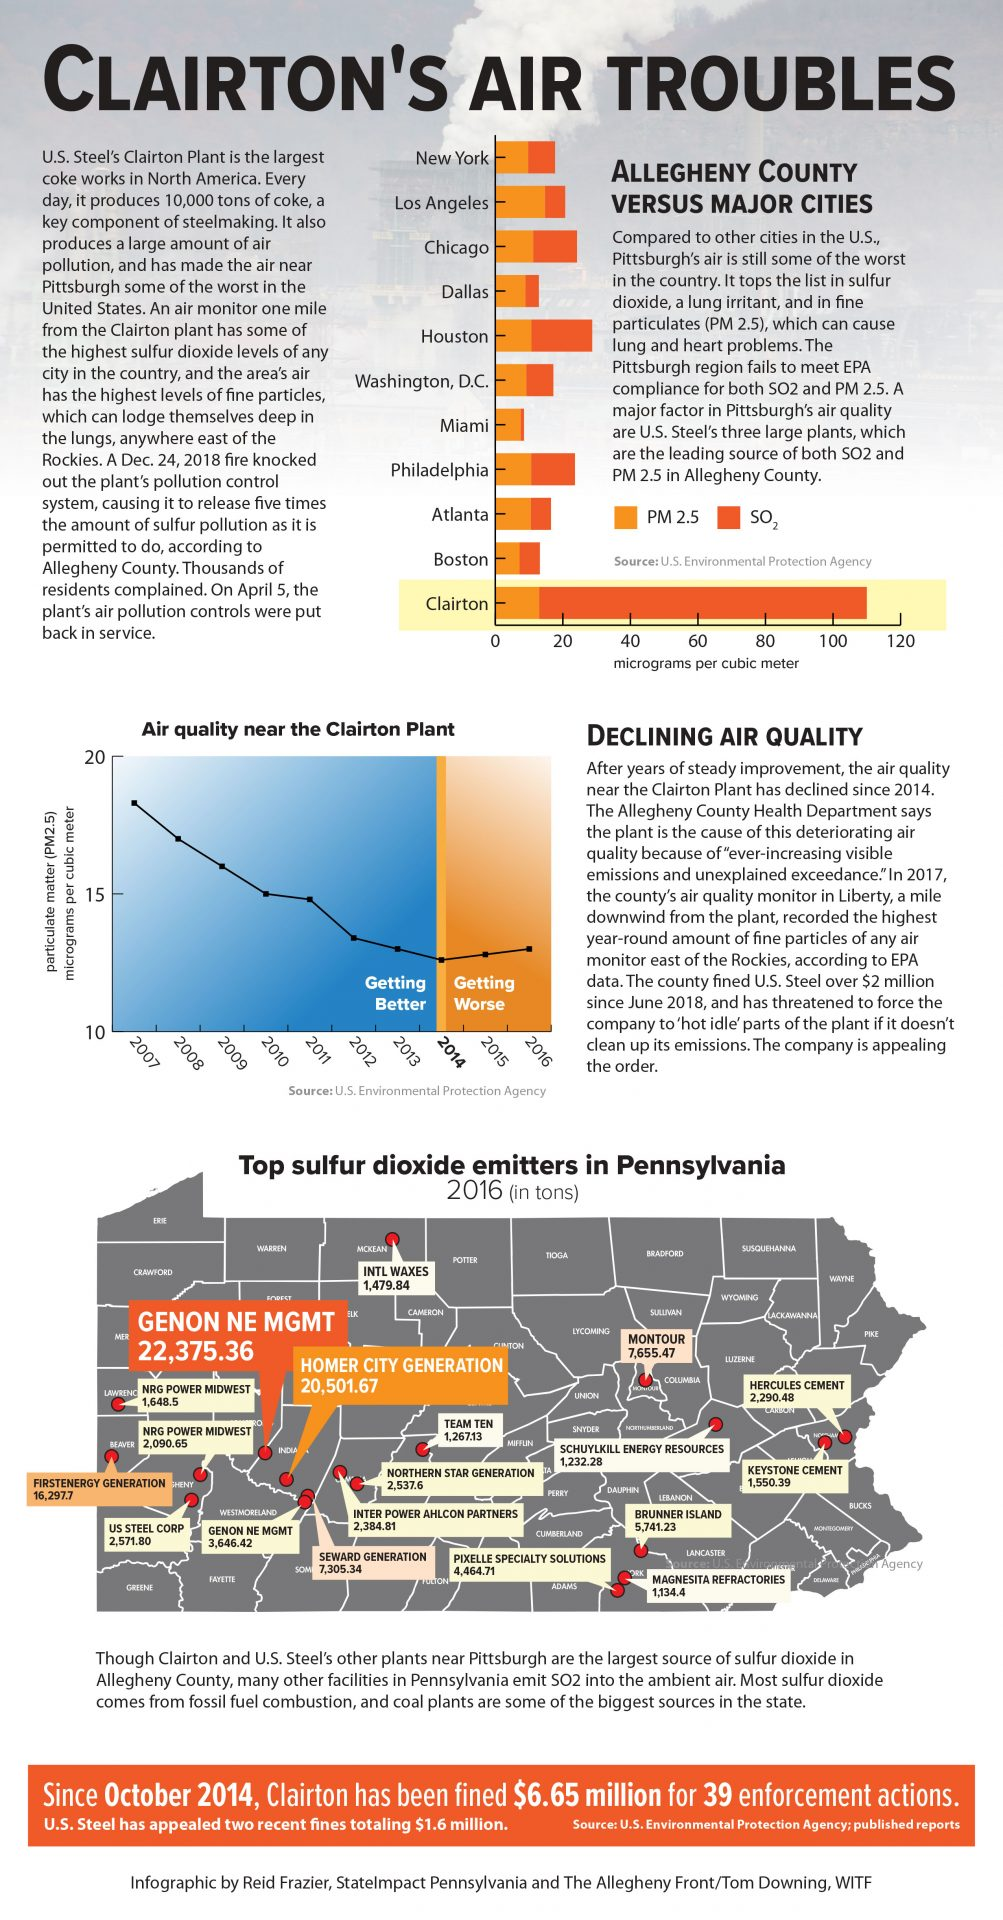 Clairton's Air Troubles Infographic - Click to open PDF version